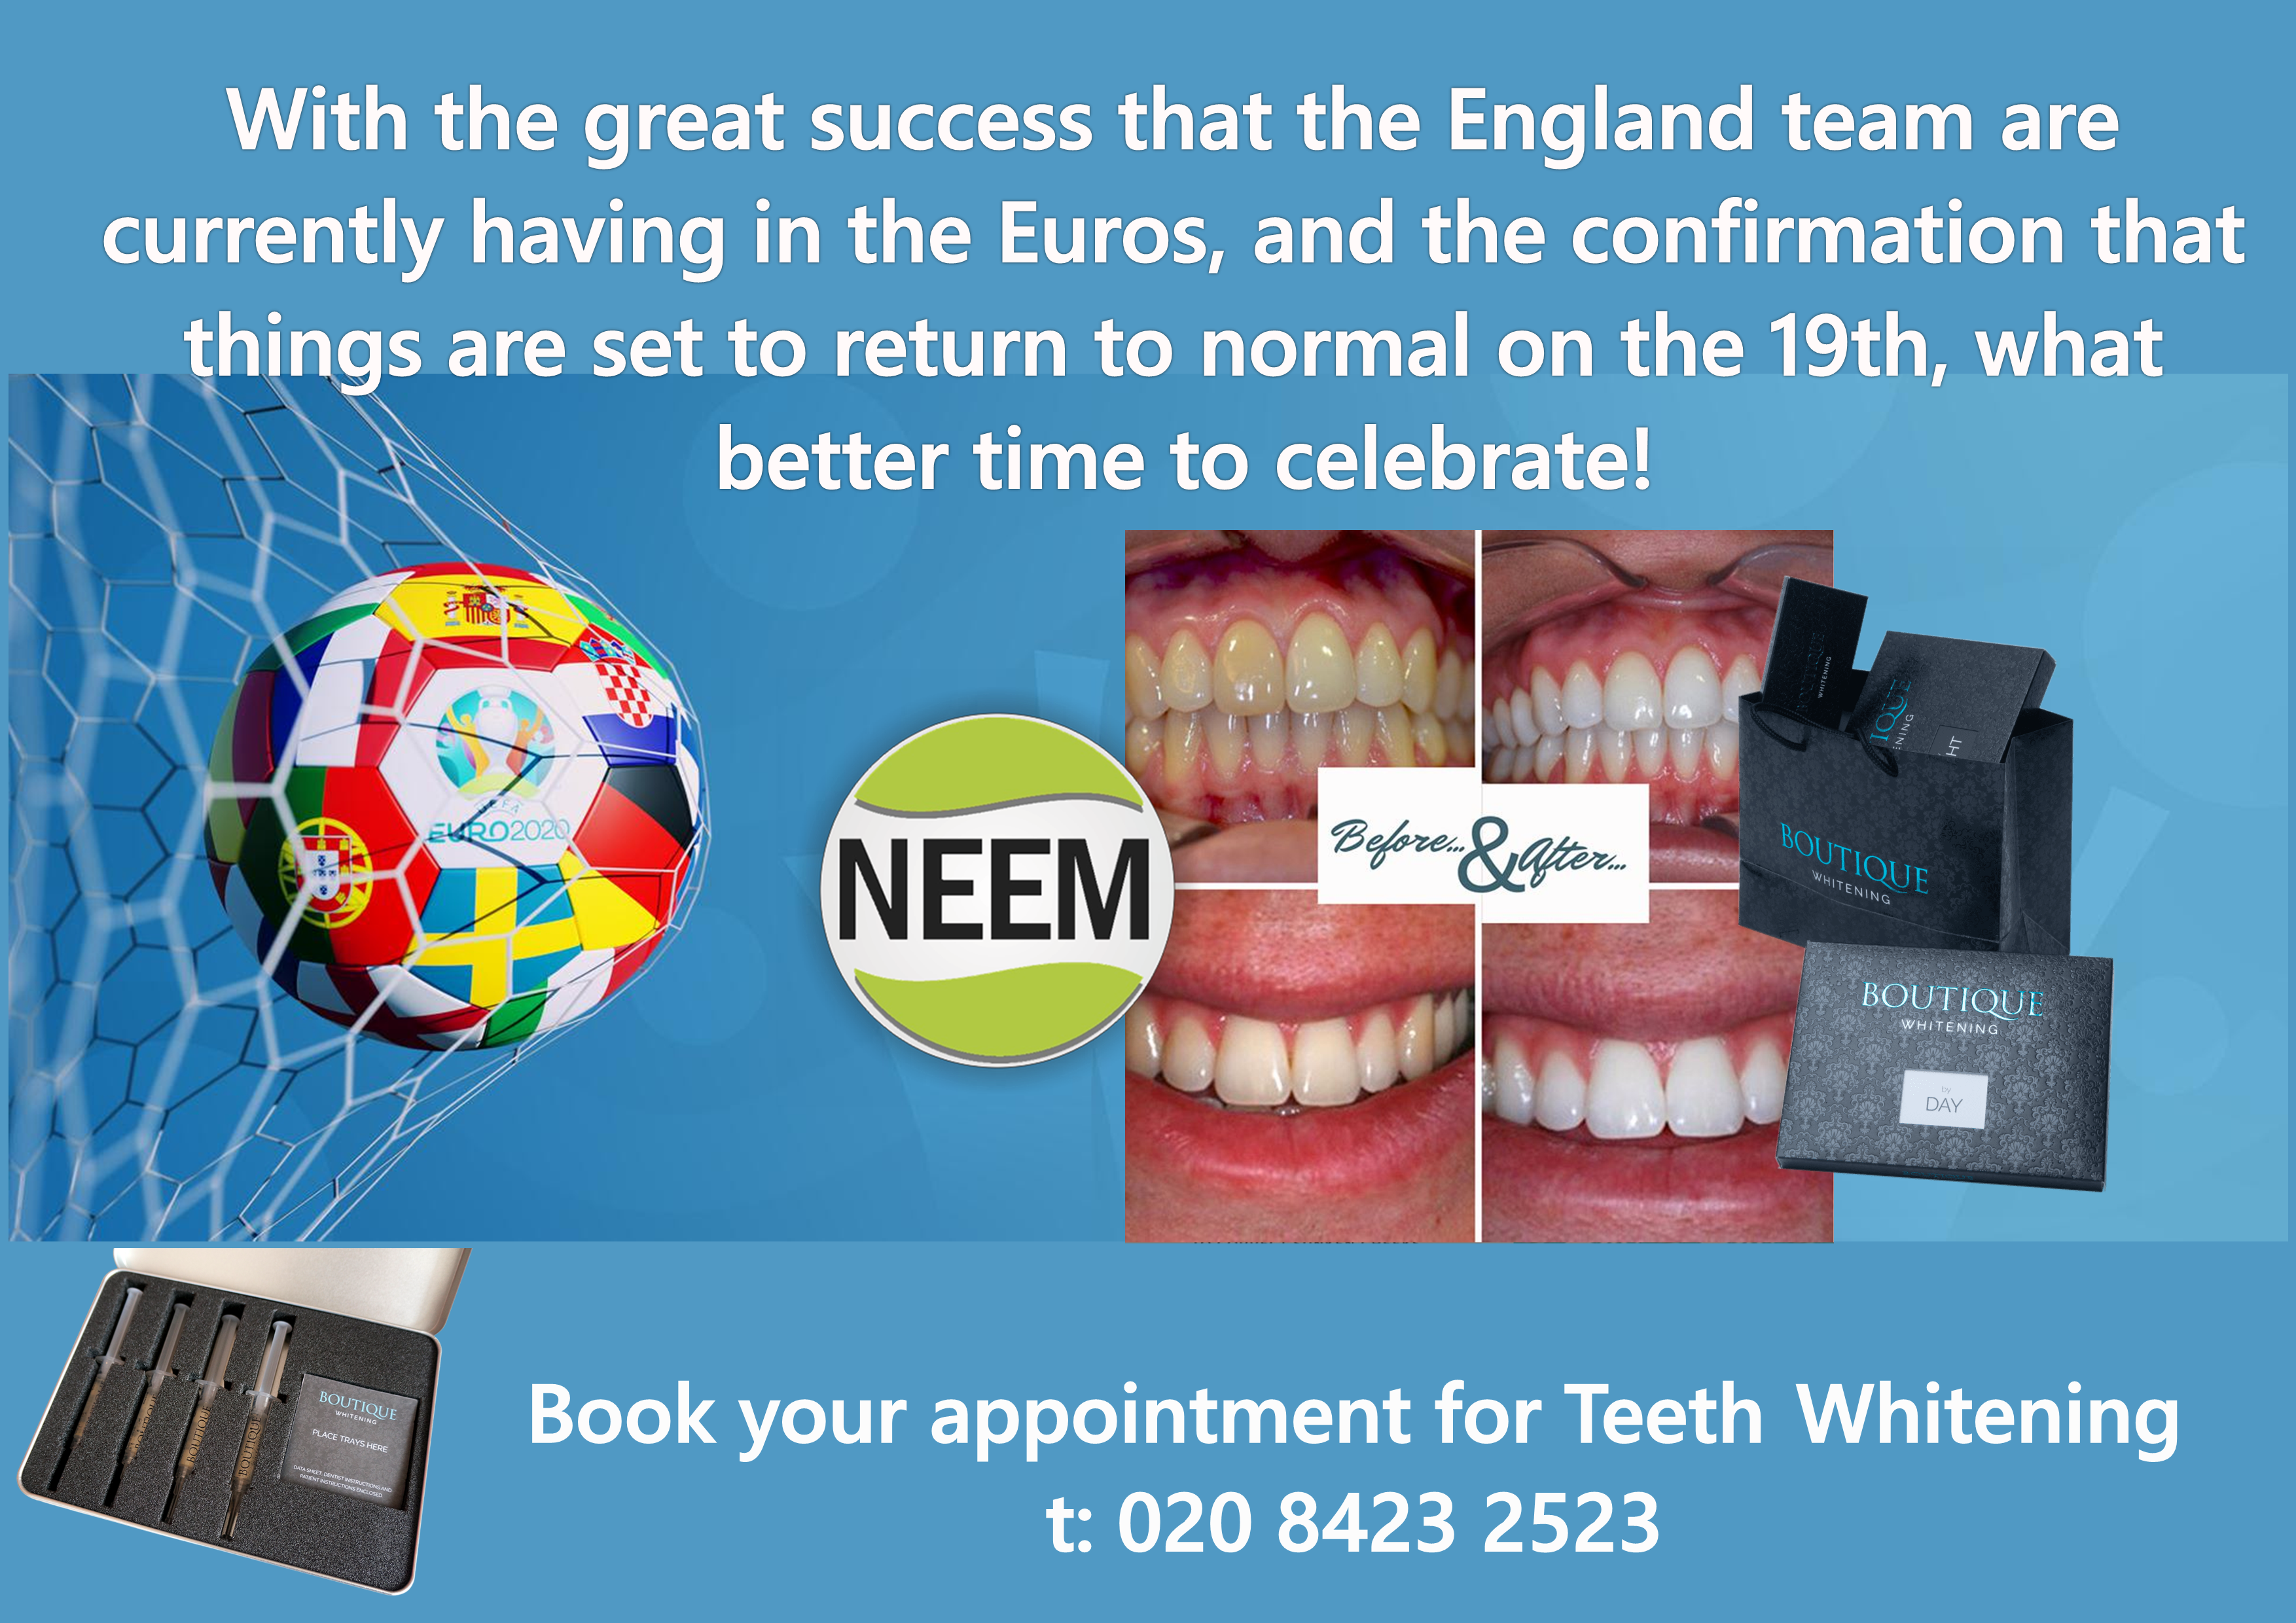 Book your appointment for Teeth Whitening